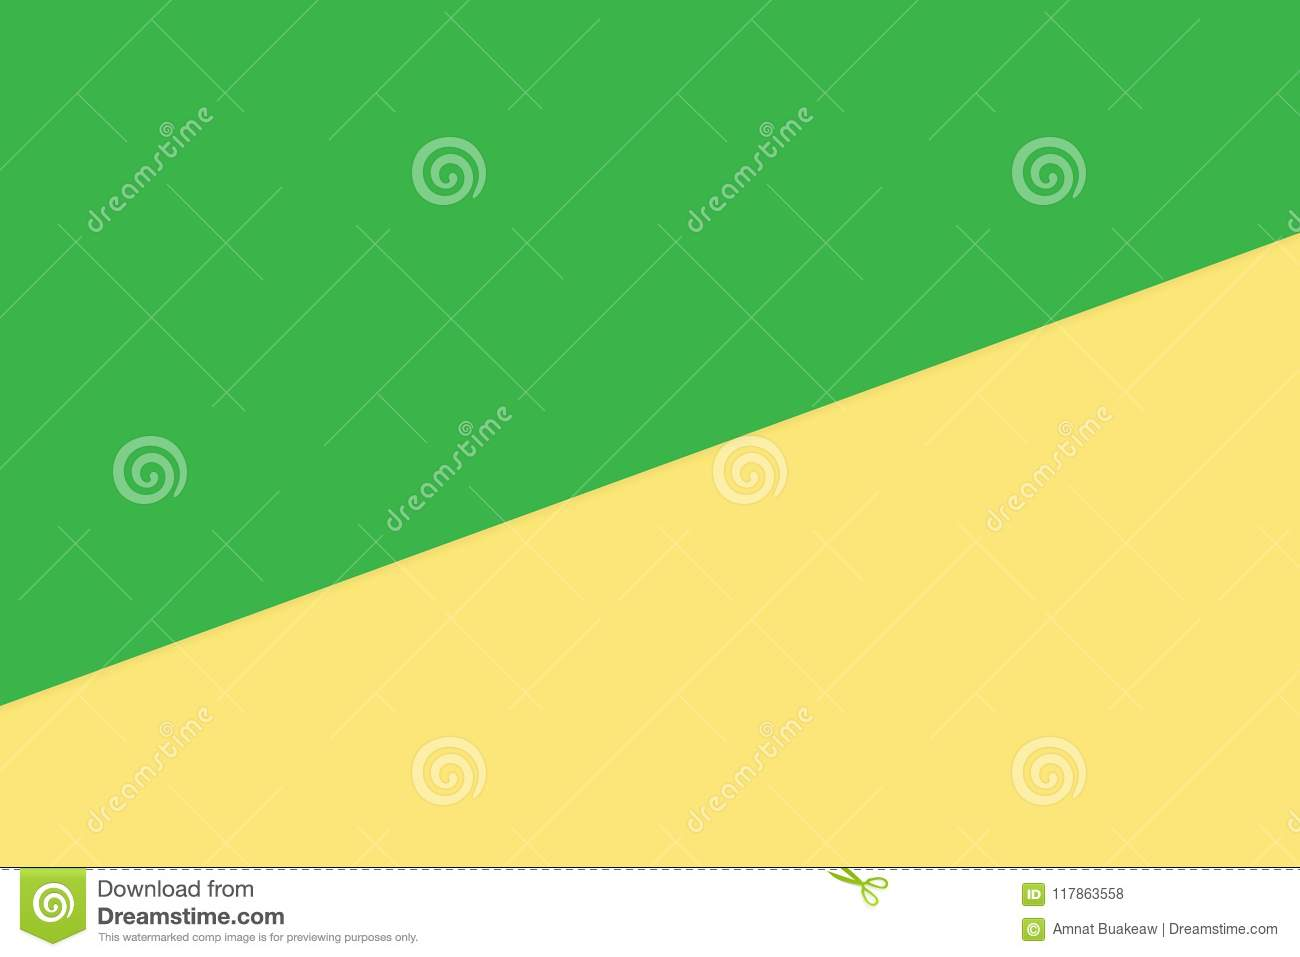 Green Yellow Two Color Soft Paper Pastel Background, Minimal Flat ...